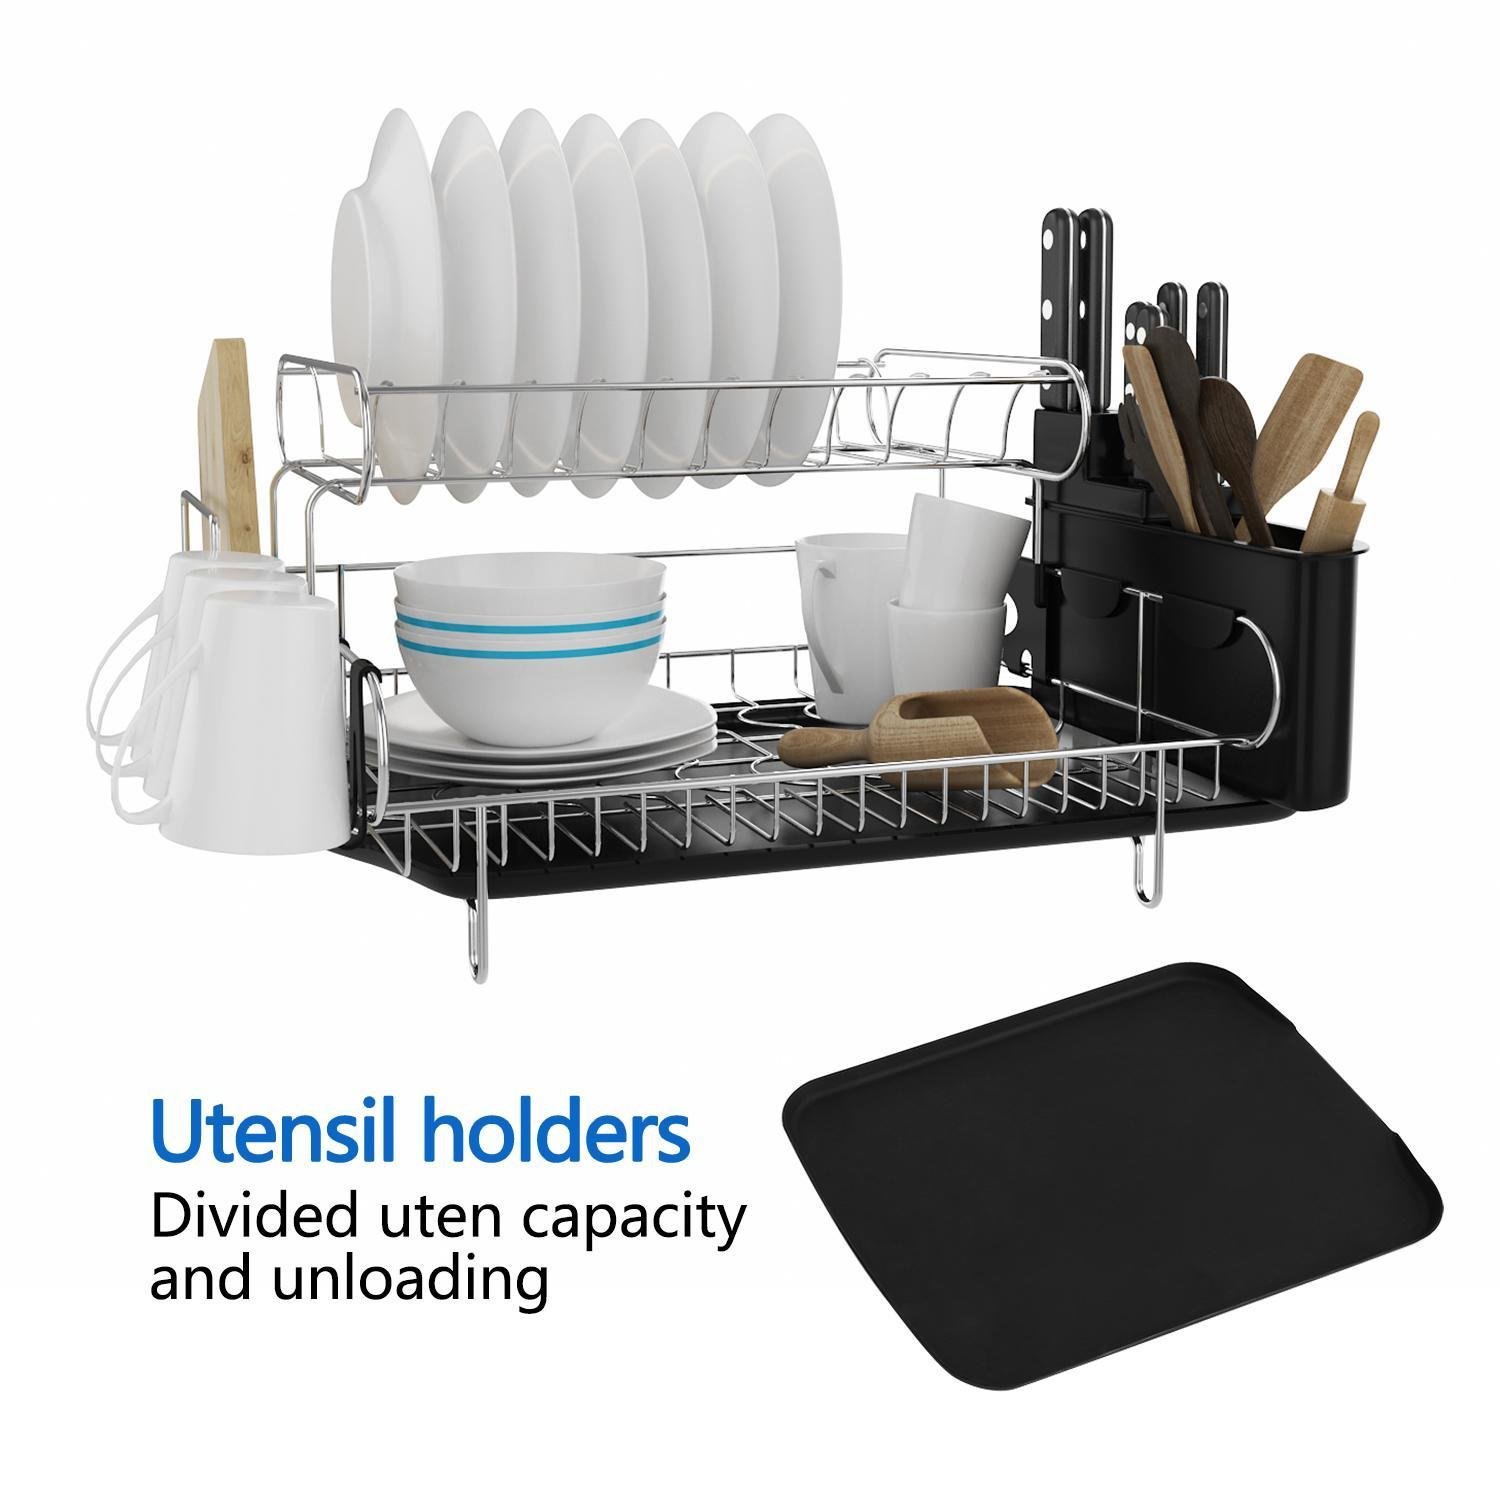 Mewalker 2 Tier Dish Drying Rack 304 Stainless Steel Professional Dish Rack with Microfiber Mat Drain Board and Cutlery Holder, Black by Mewalker (Image #3)